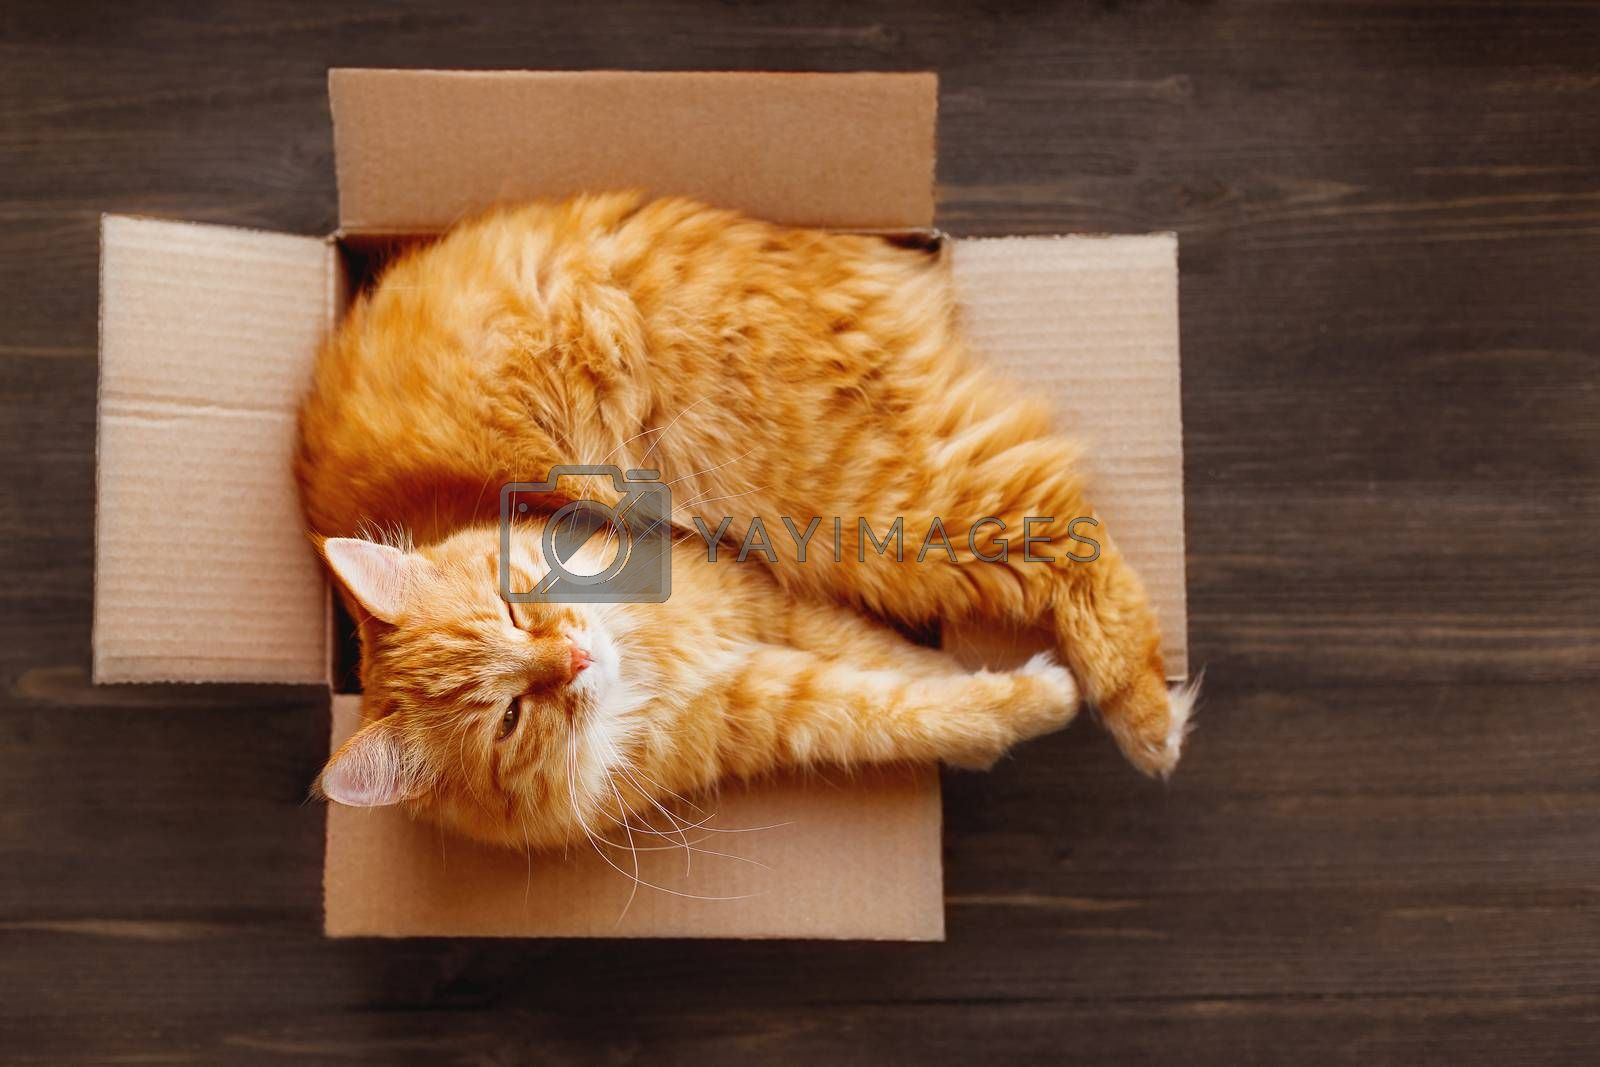 Cute ginger cat settled in carton box on wooden table. Fluffy pet stares with sleepy expression on face. Boxing Day concept.